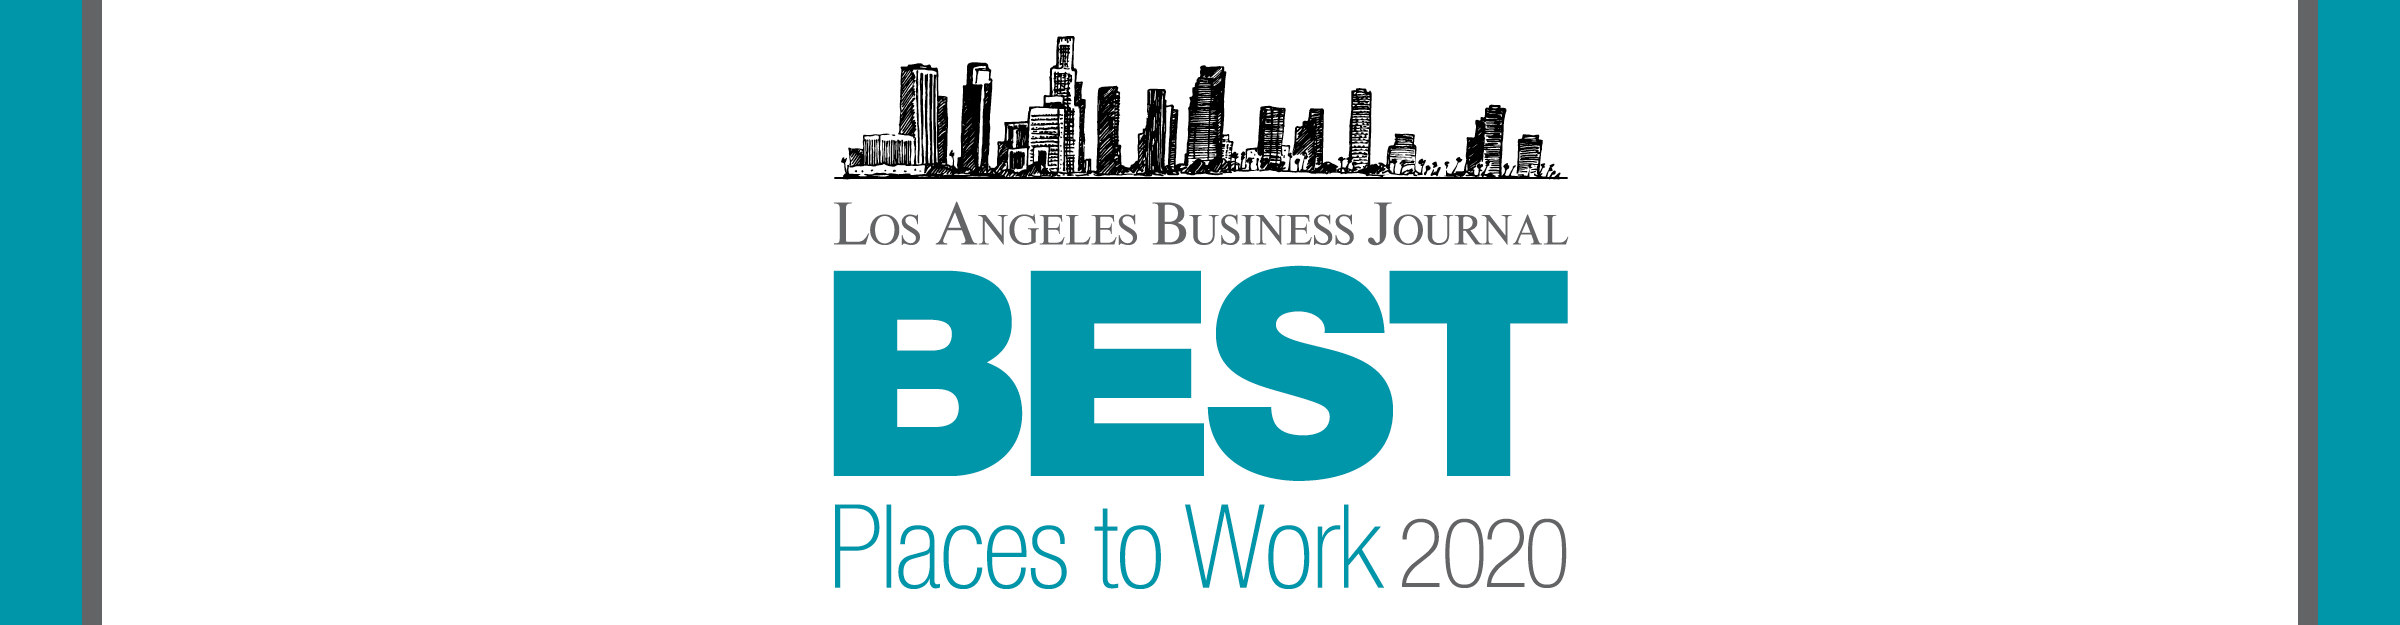 Best Places To Work 2020.Best Places To Work Awards Los Angeles Business Journal